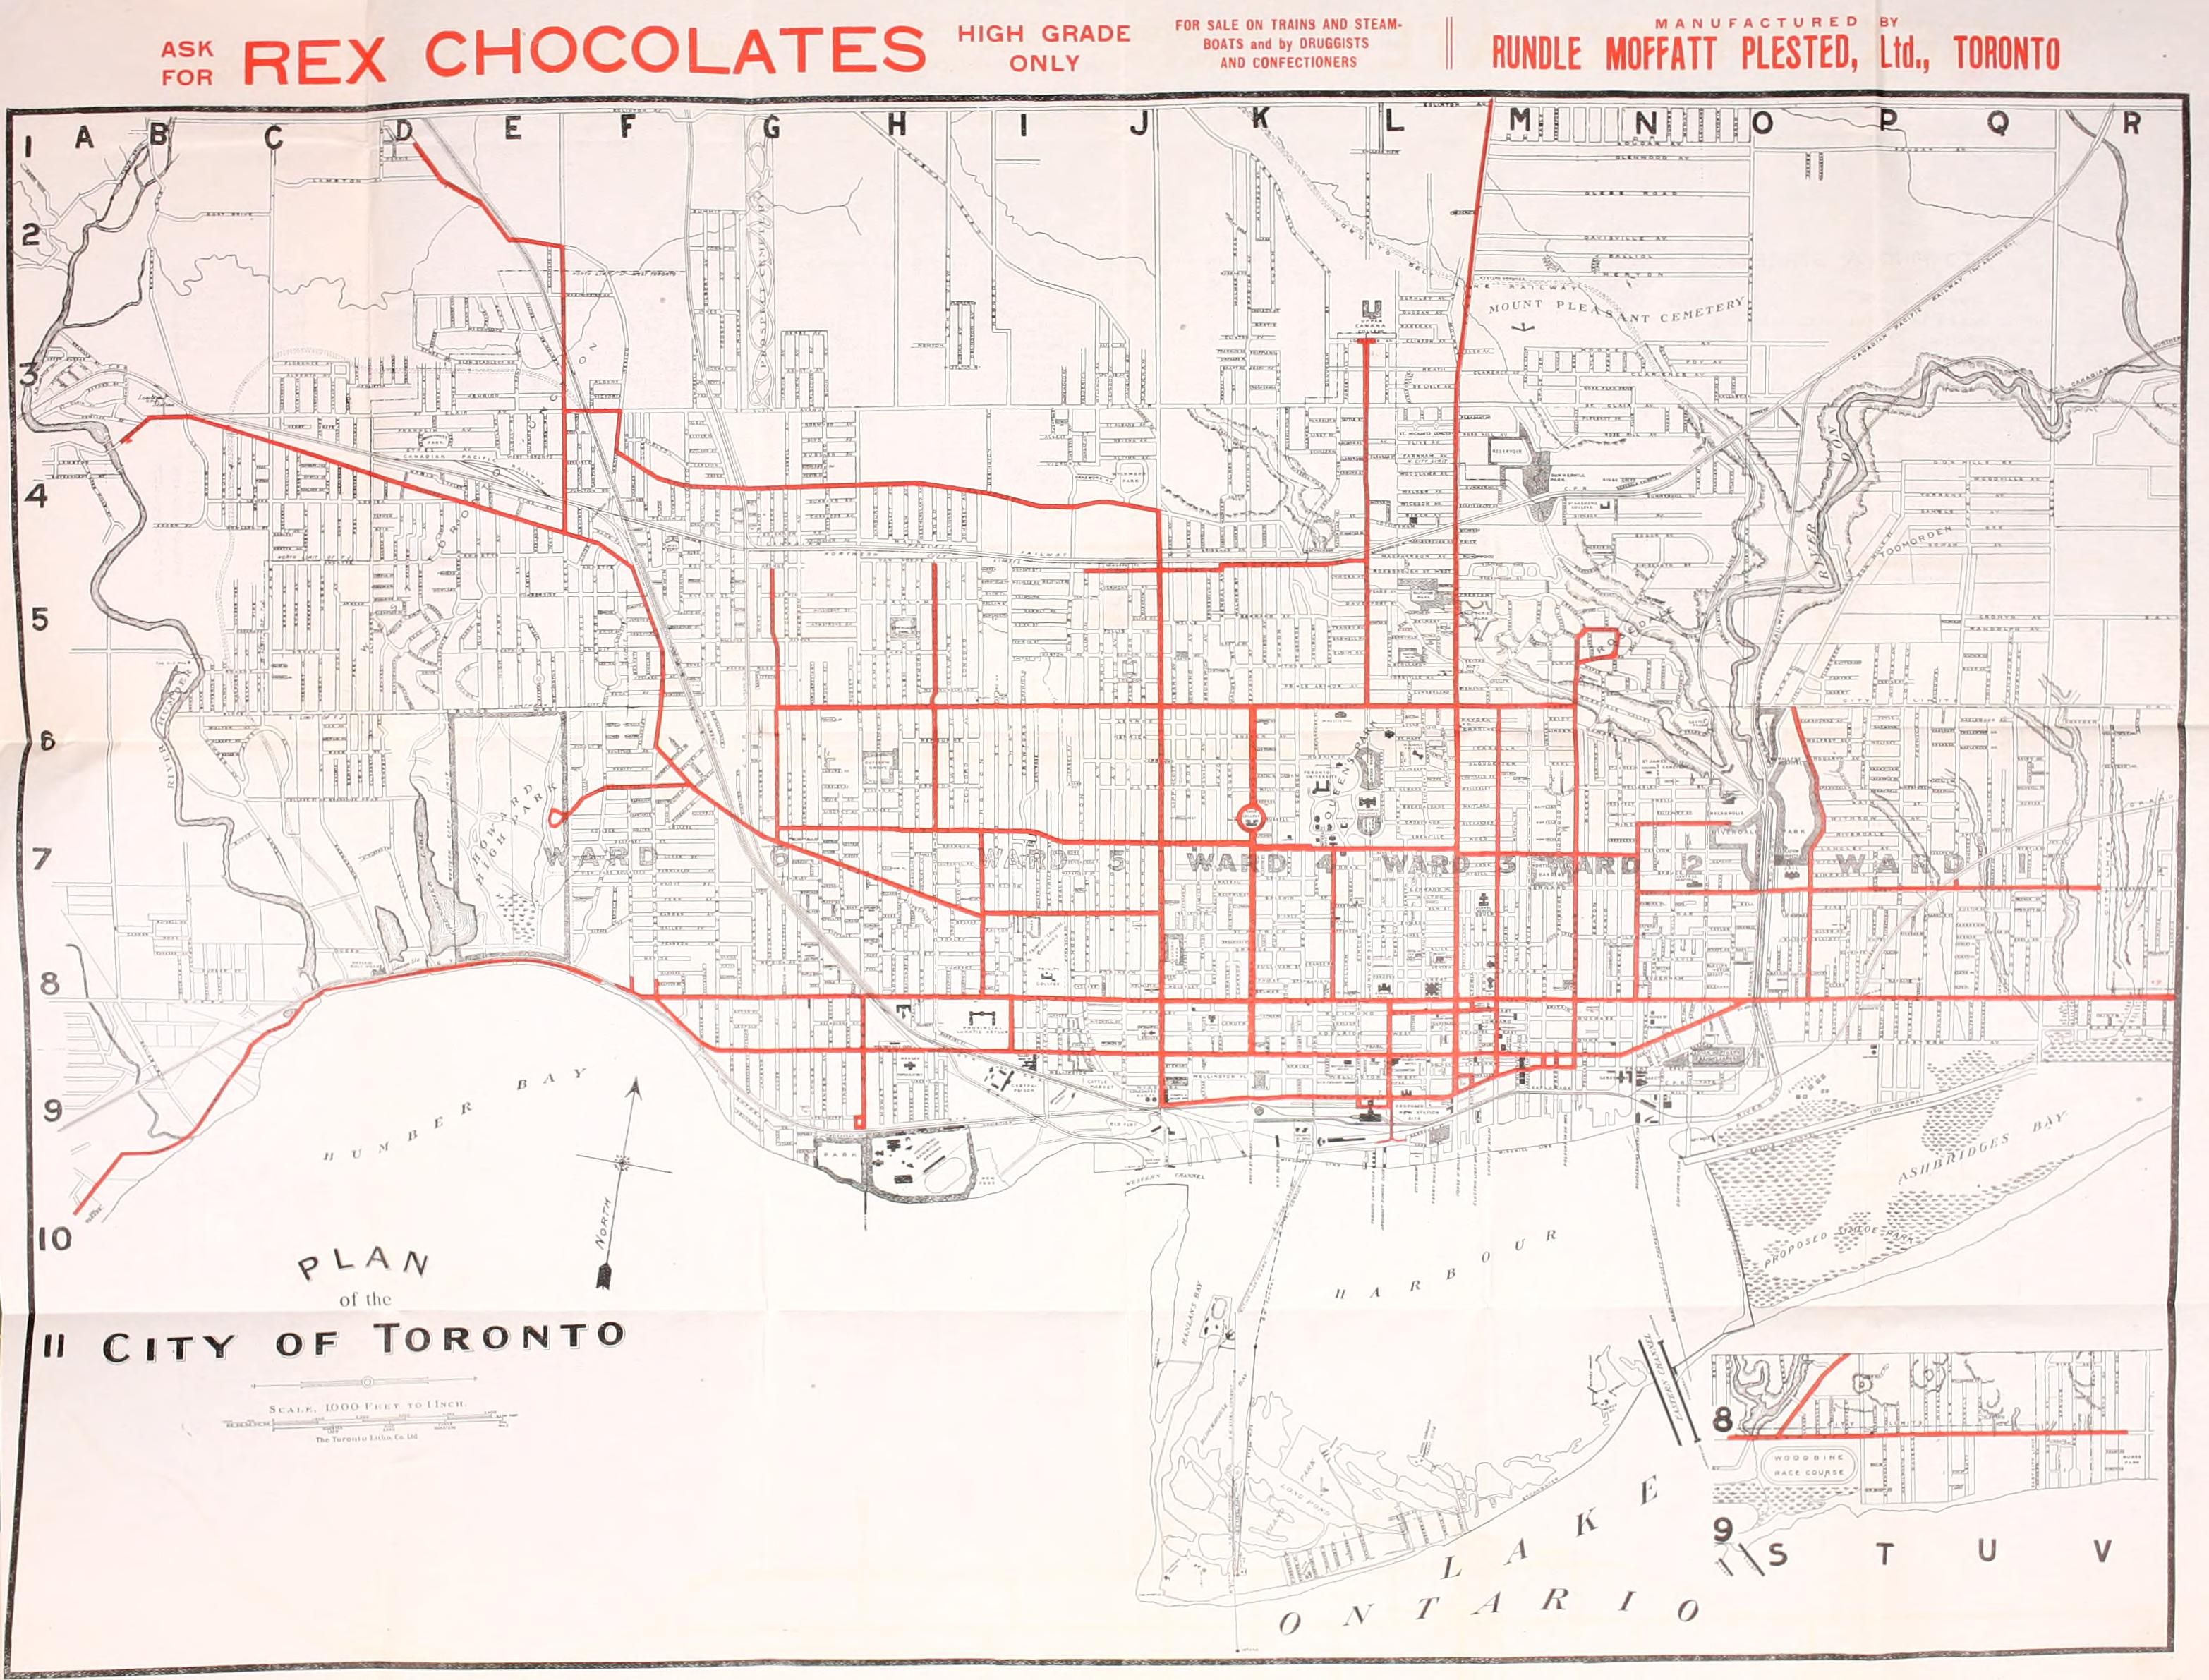 Ttc system maps transit toronto content system map 1912 publicscrutiny Image collections